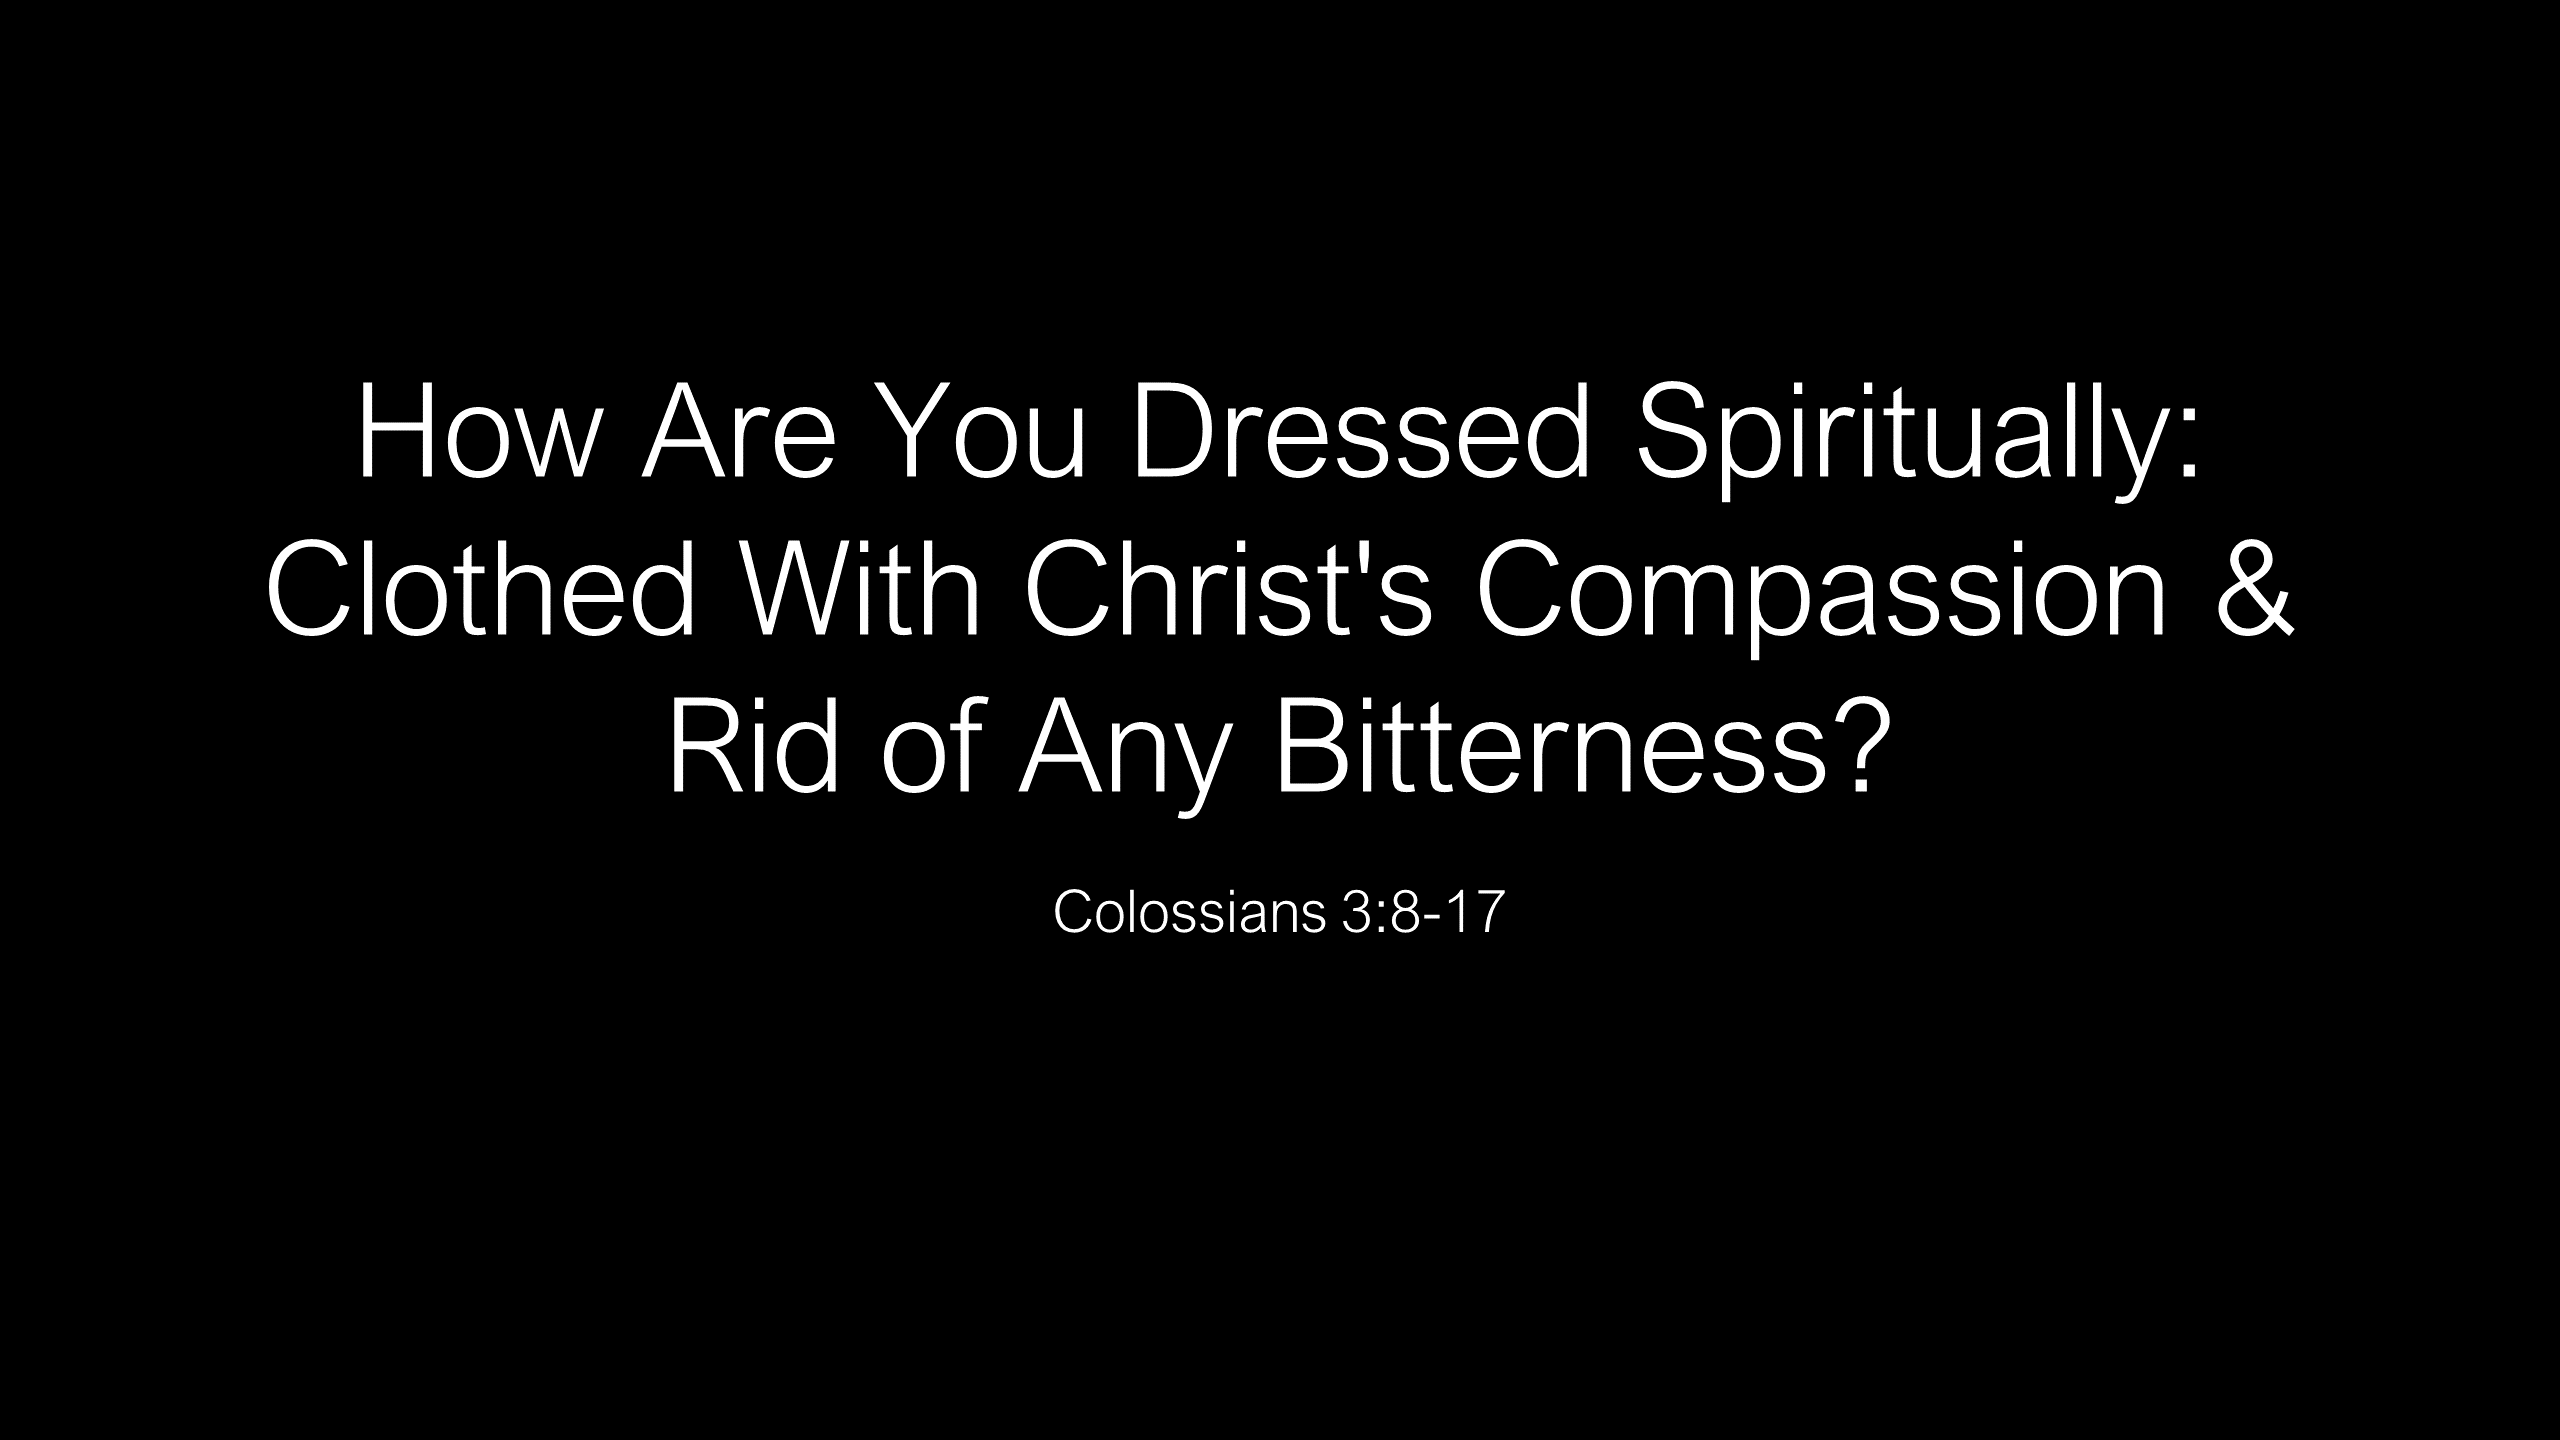 SWS-05 - How Are You Dressed Spiritually - Clothed With Christ's Compassion & Rid Of Any Bitterness (1)